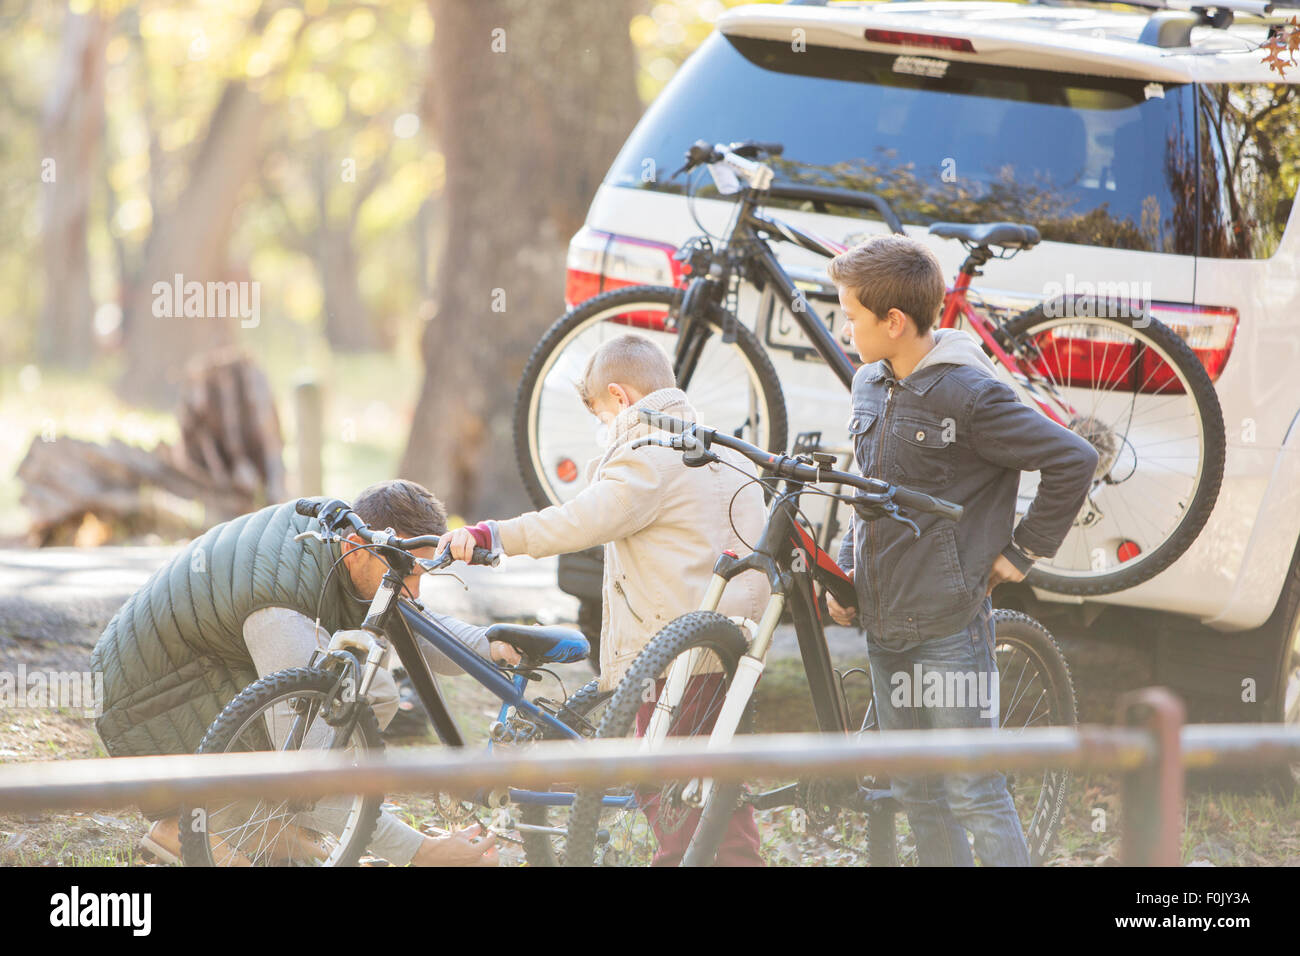 Father and sons unloading bicycles from car - Stock Image